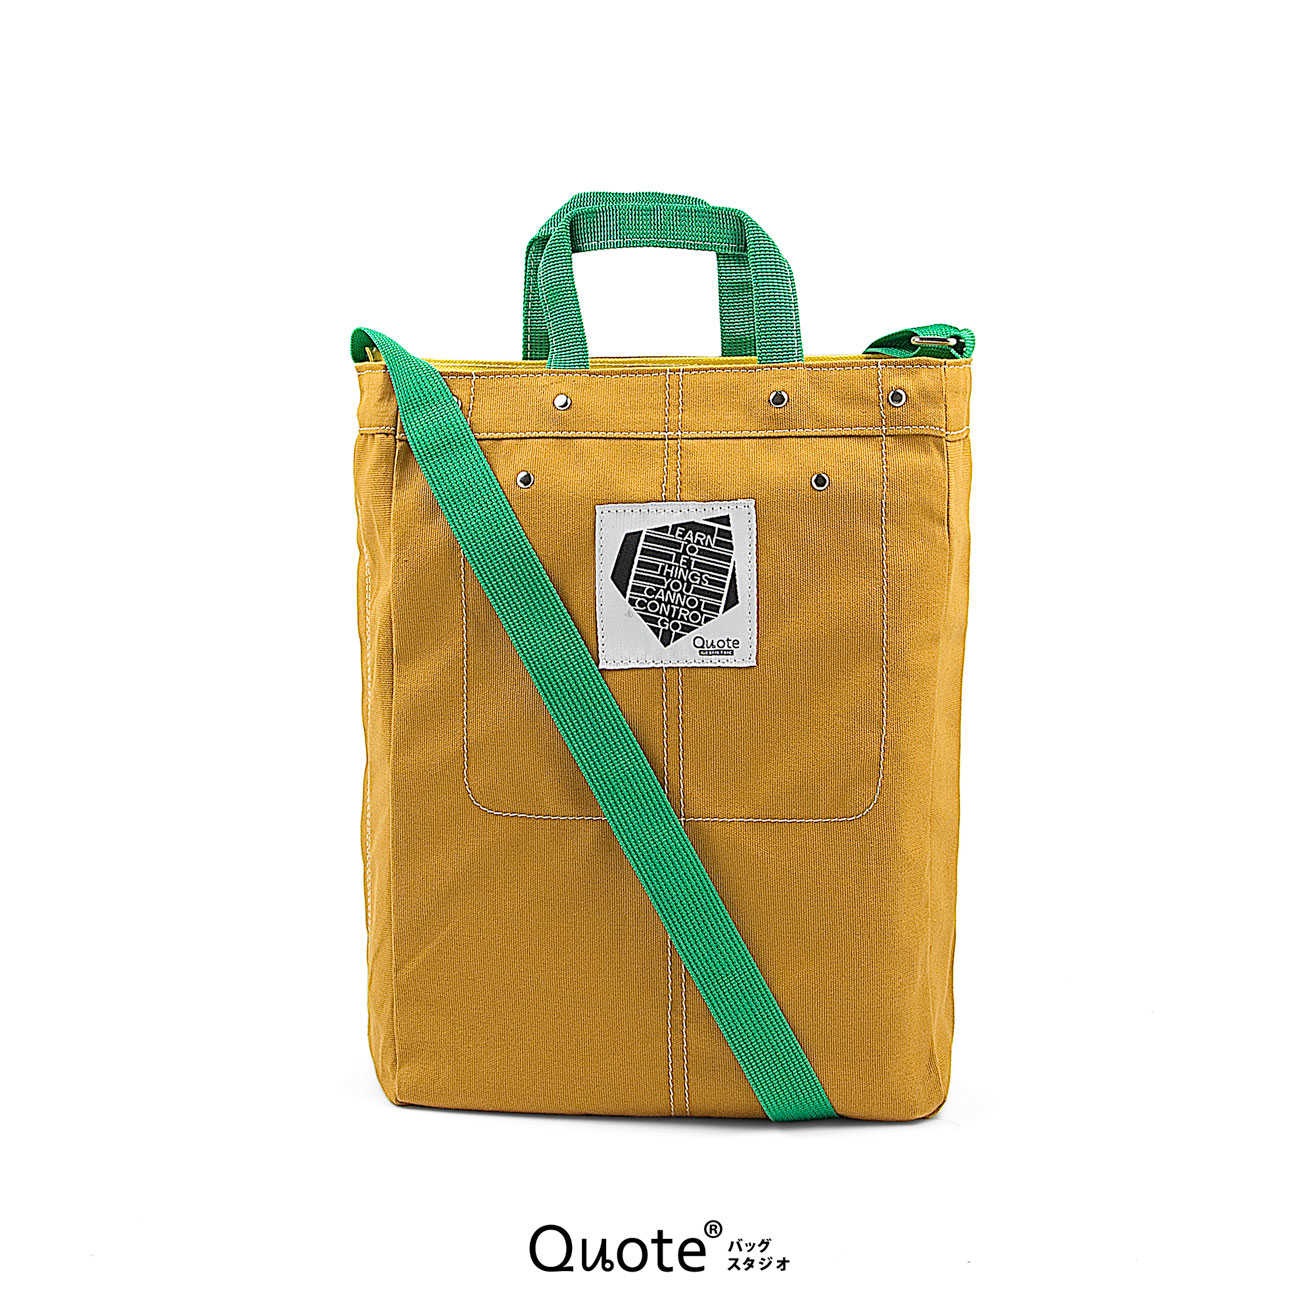 Coss-over bag # M Mustard/Green  || クロスボディバッグ